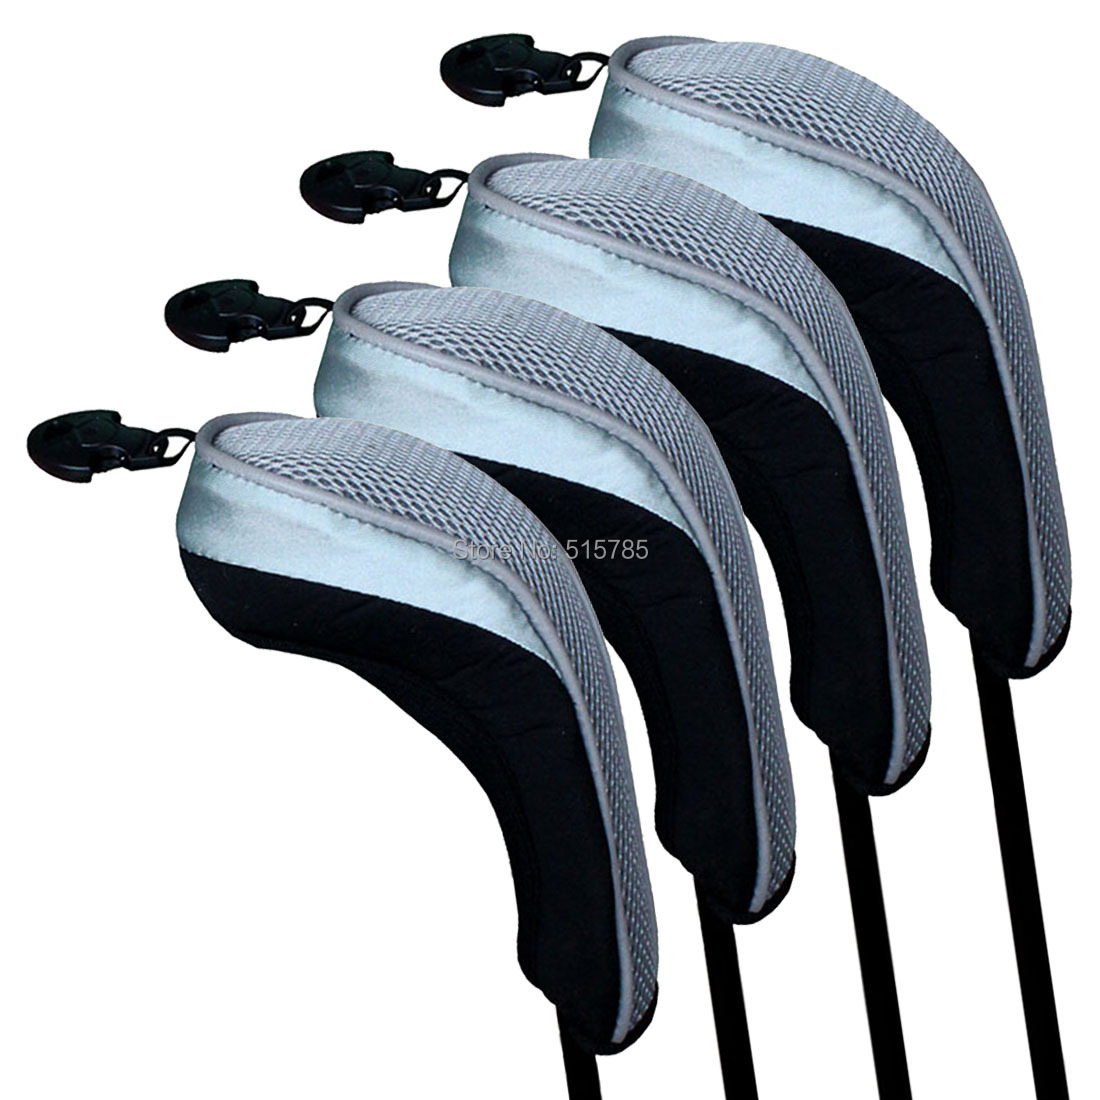 Andux Golf Hybrid Club Head Covers Set Of 4 Black & Grey Interchangeable No. Tag MT/hy03